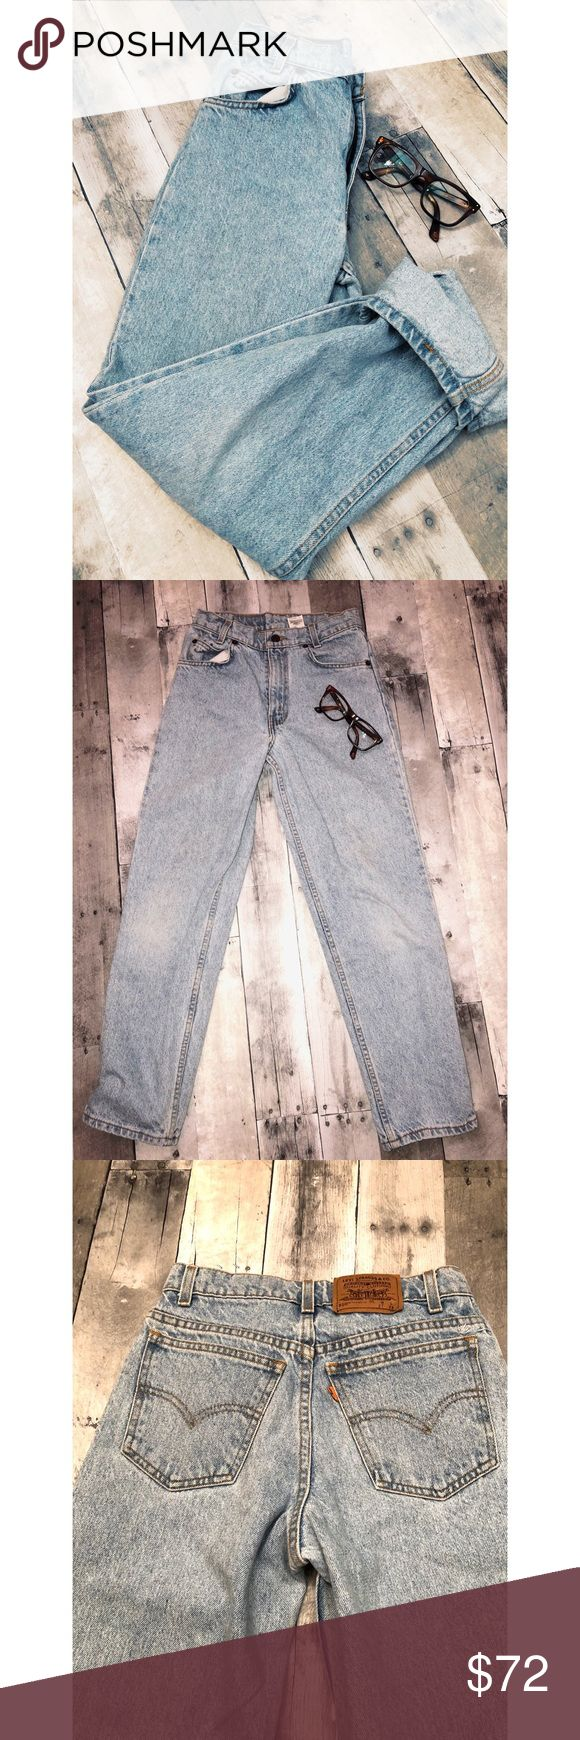 "Vintage Levi's mom jeans student 550 PRICE IS PRETTY FIRM!! Vintage & very beautiful "" mom jeans "". No flaws just perfect. These have the orange "" Levi "" tag . Lighter denim . Waist laying flat 13"" . Since these pair of jeans are vintage I've included pictures with measurements . If you're interested in buying please make sure to check out the measurements for a good fit. Please let me know if you have any questions. Levi's Jeans"